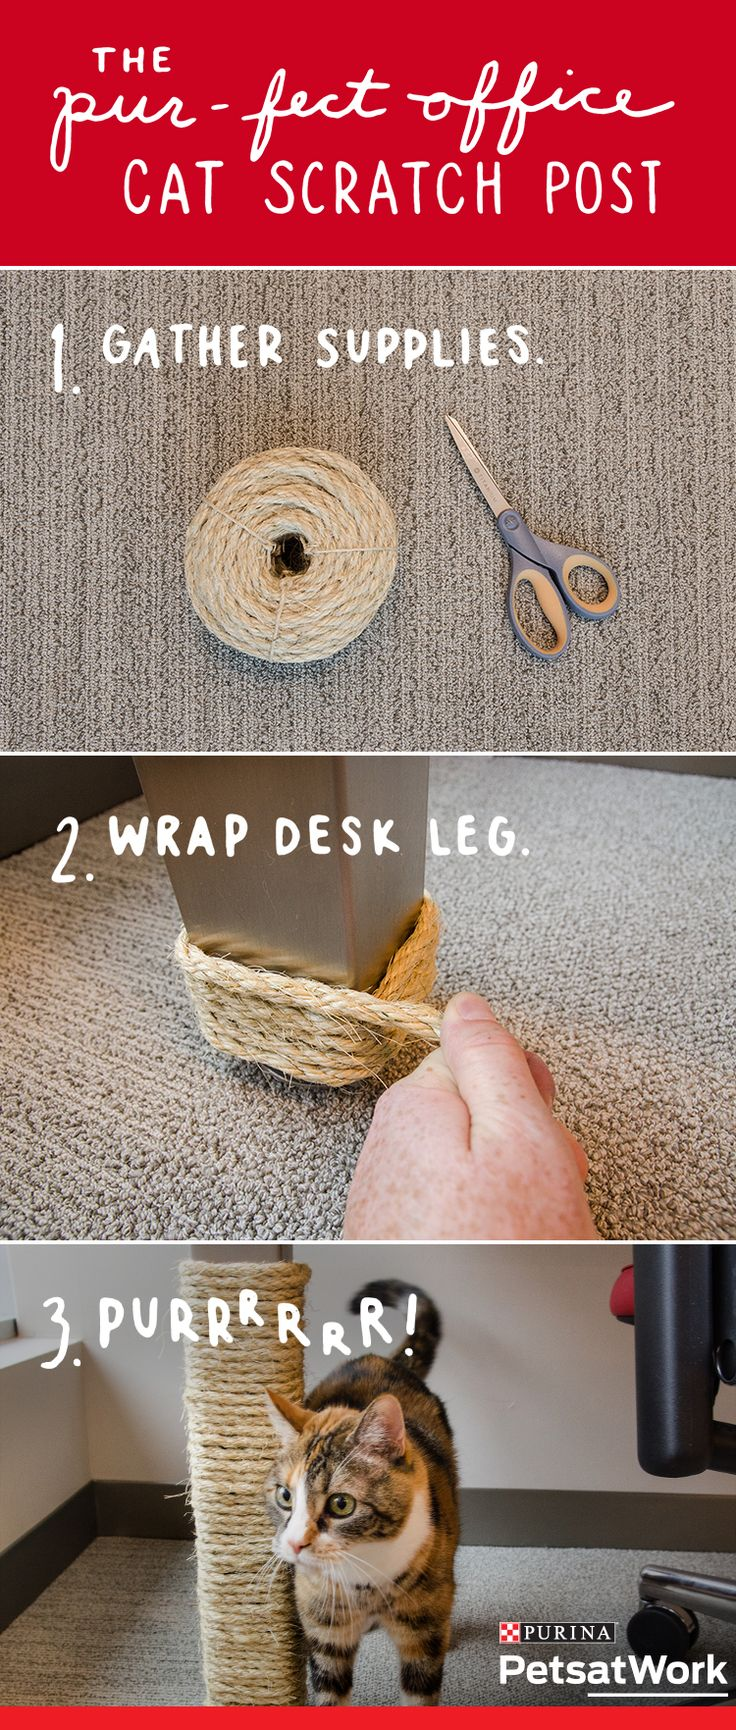 Here's a simple and easy #PetLifeHack that will entertain your cat while in the office. Follow this how-to guide to make a DIY cat scratch post right on your desk leg. #PetsAtWork | DIY videos here →  http://gwyl.io/